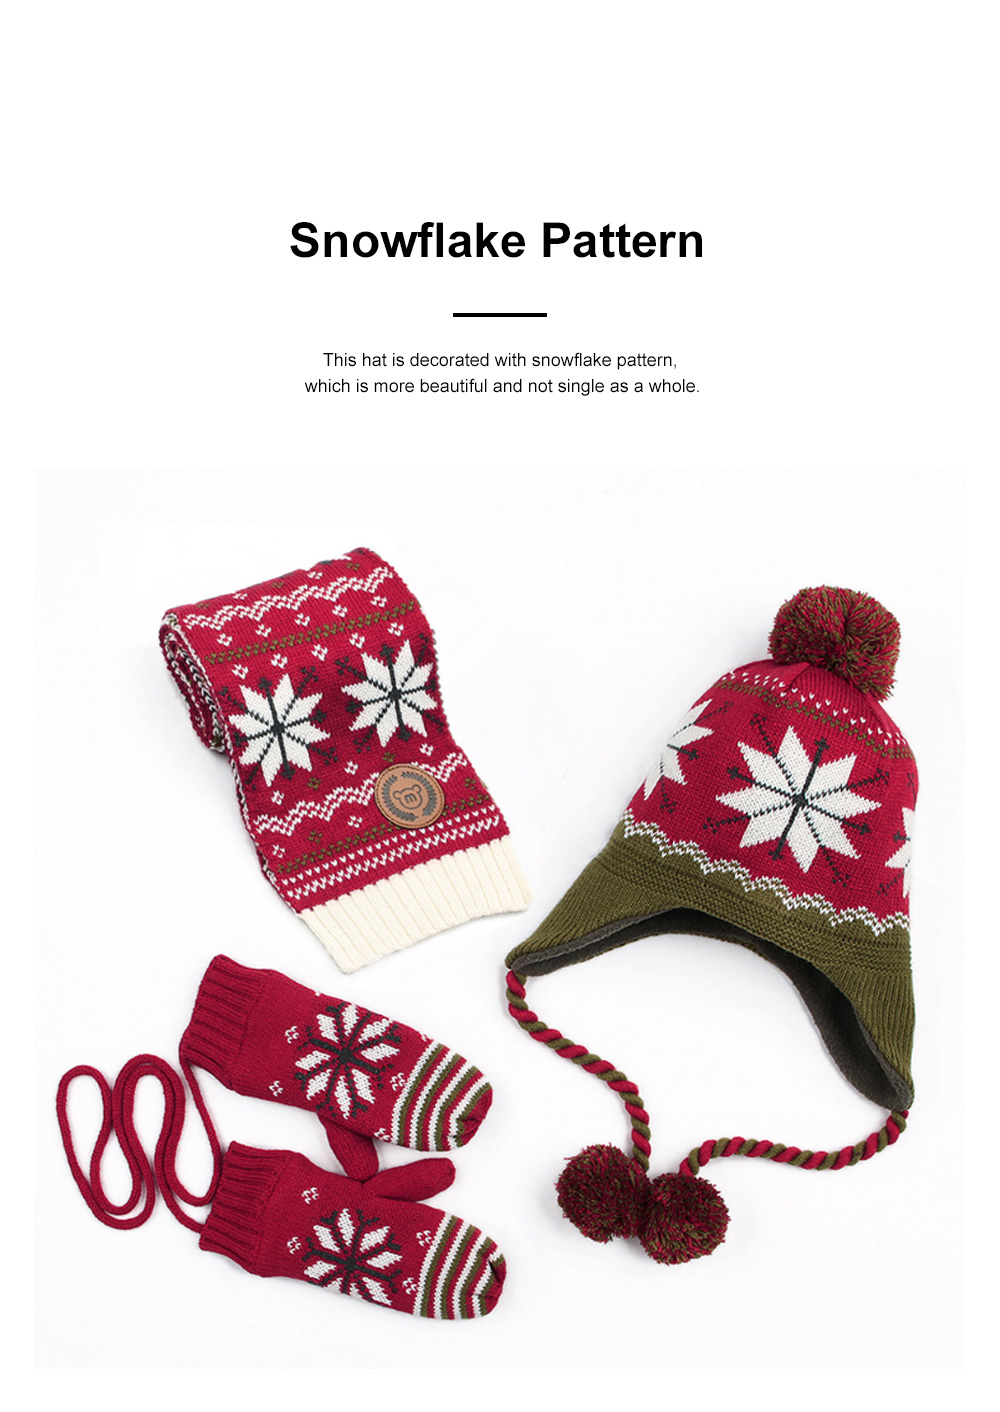 New Children's Hat Warm and Plush Hat for Boys and Girls Snow Flake Decorated Christmas Style Autumn Winter Hat 1